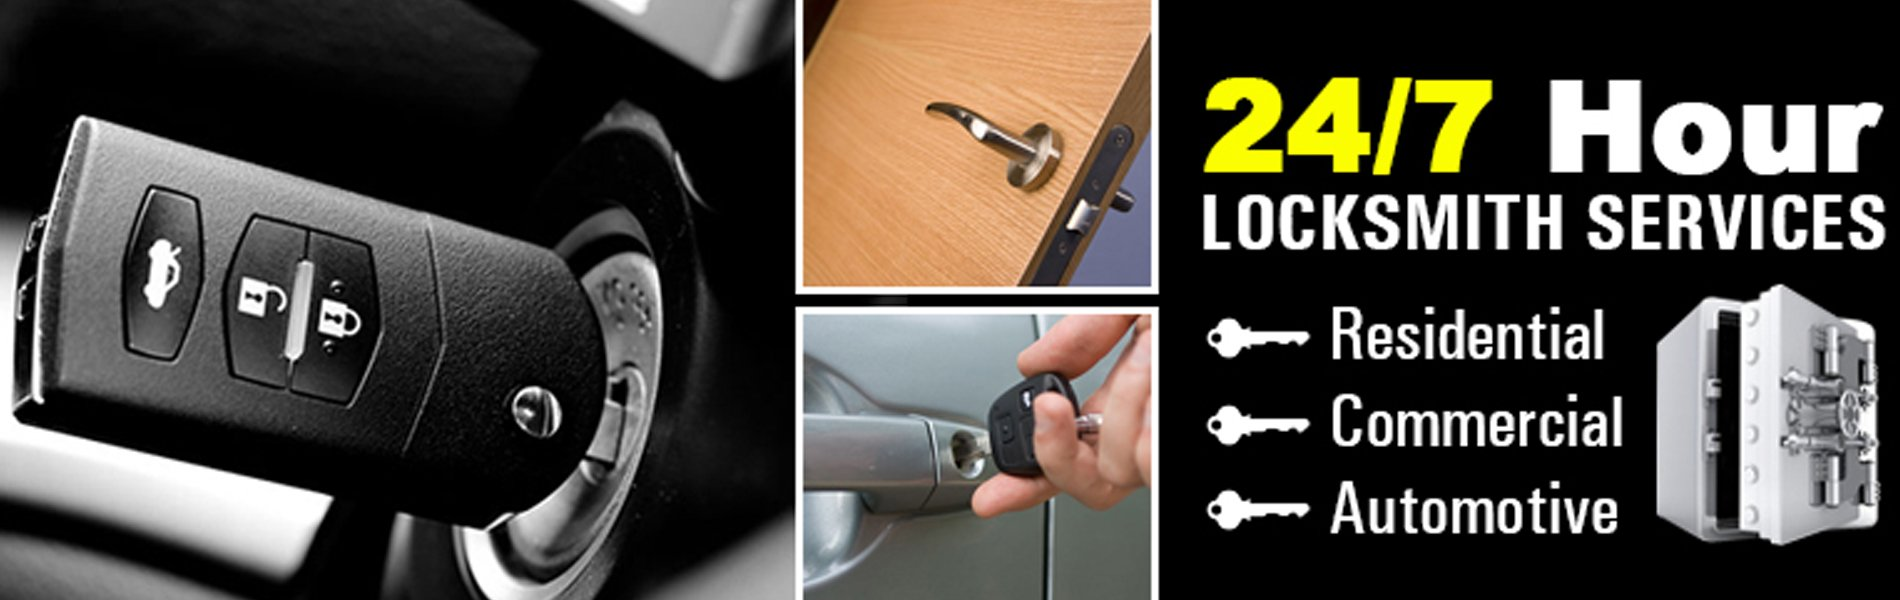 Green Hills TN Locksmith Store, Green Hills, TN 615-628-7890